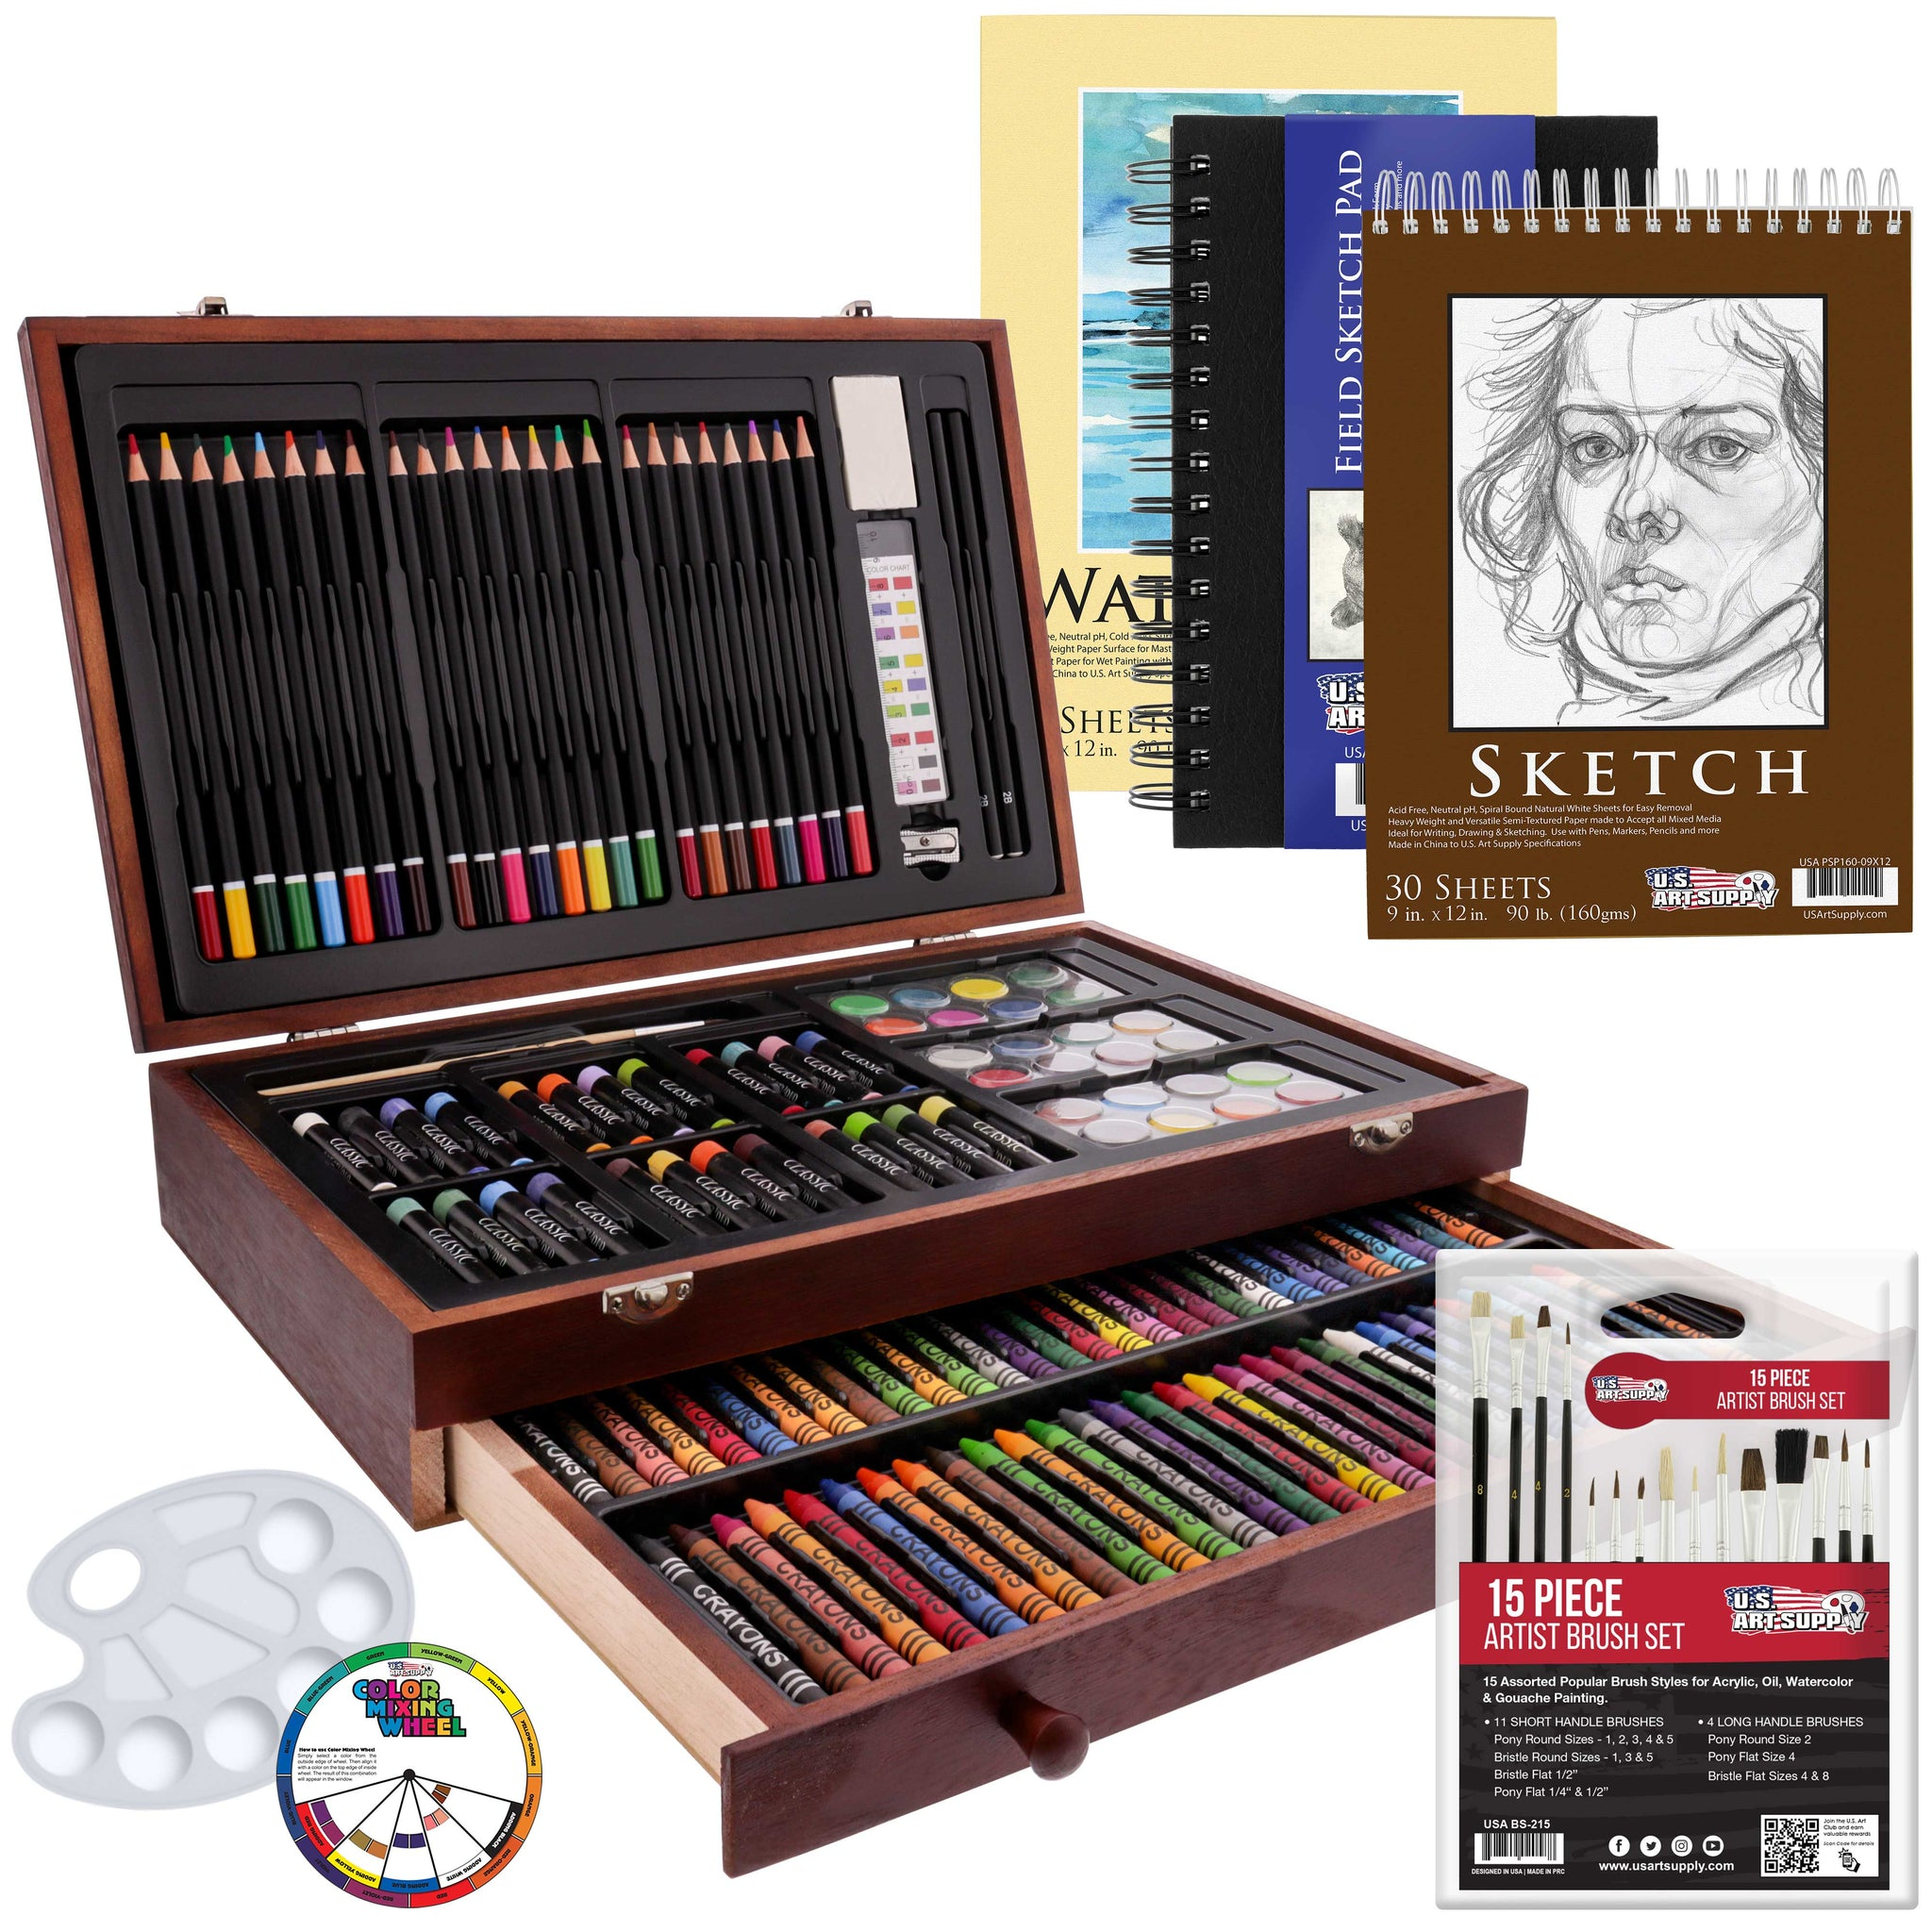 162 Piece-Deluxe Mega Wood Box Art, Painting & Drawing Set that contains all the additional supplies you need to get started